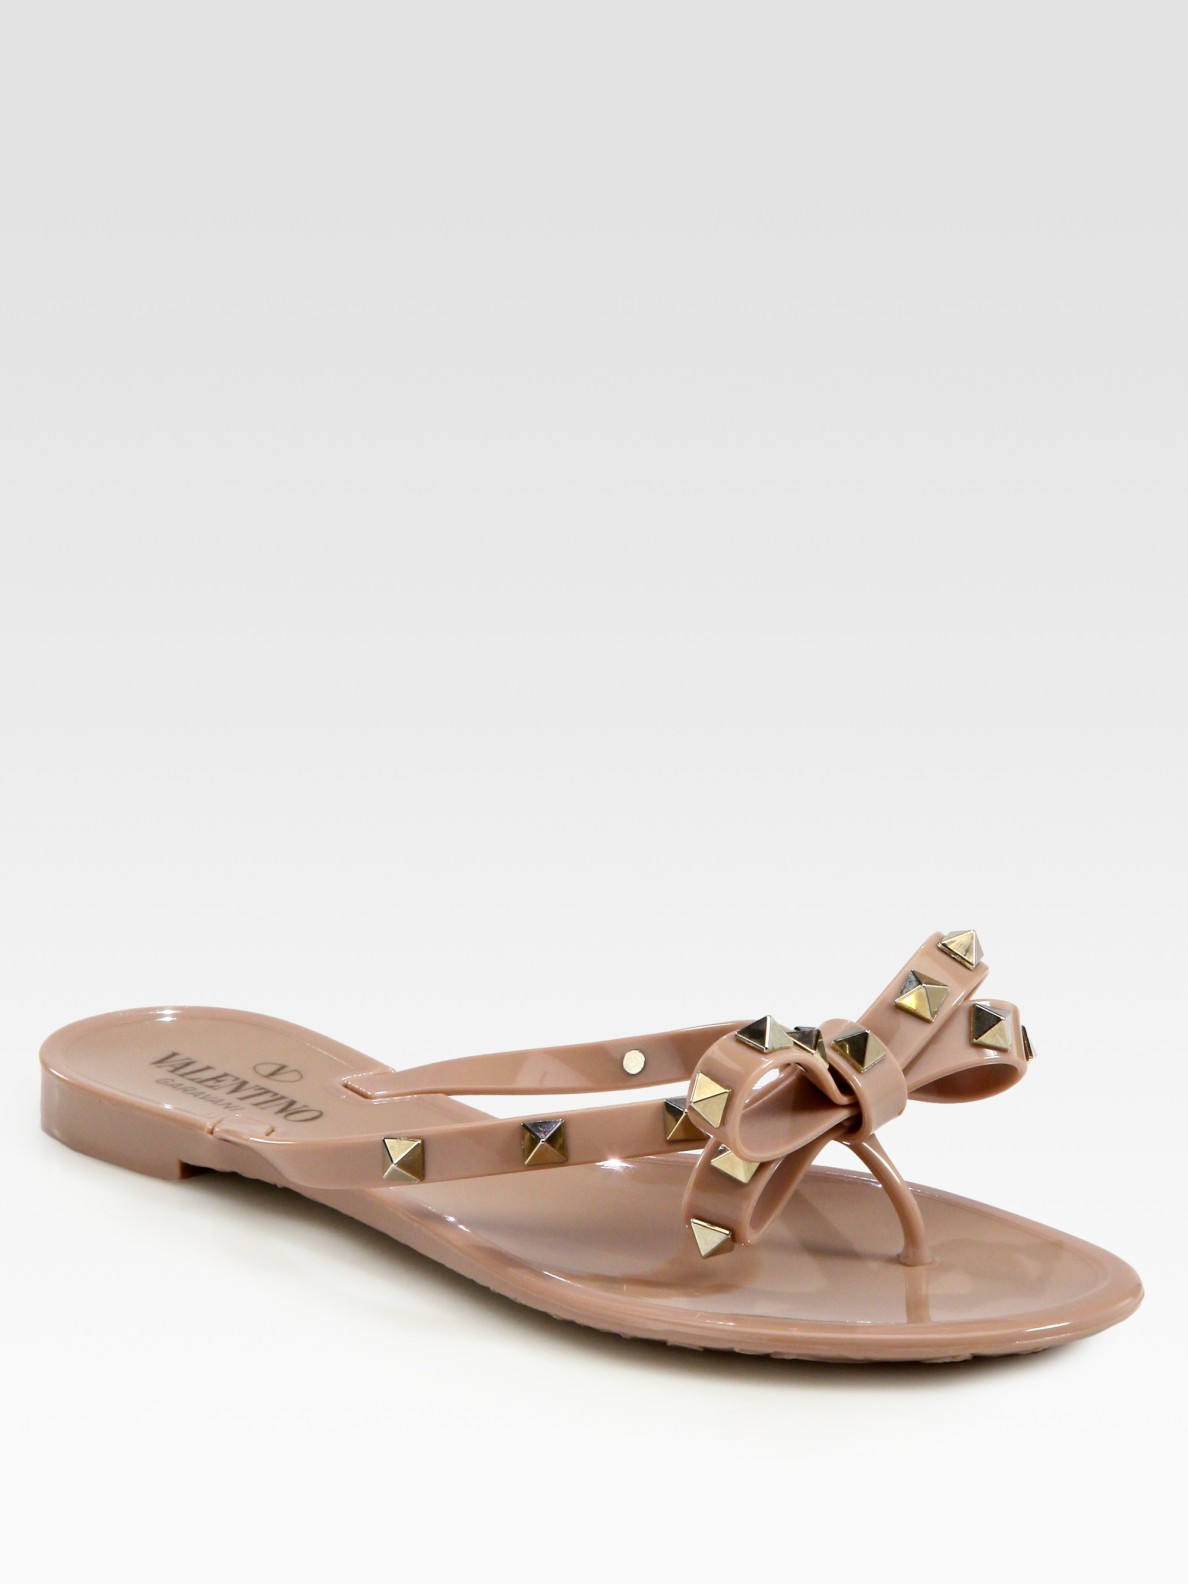 valentino rockstud studded thong bow jelly flip flops in black lyst. Black Bedroom Furniture Sets. Home Design Ideas